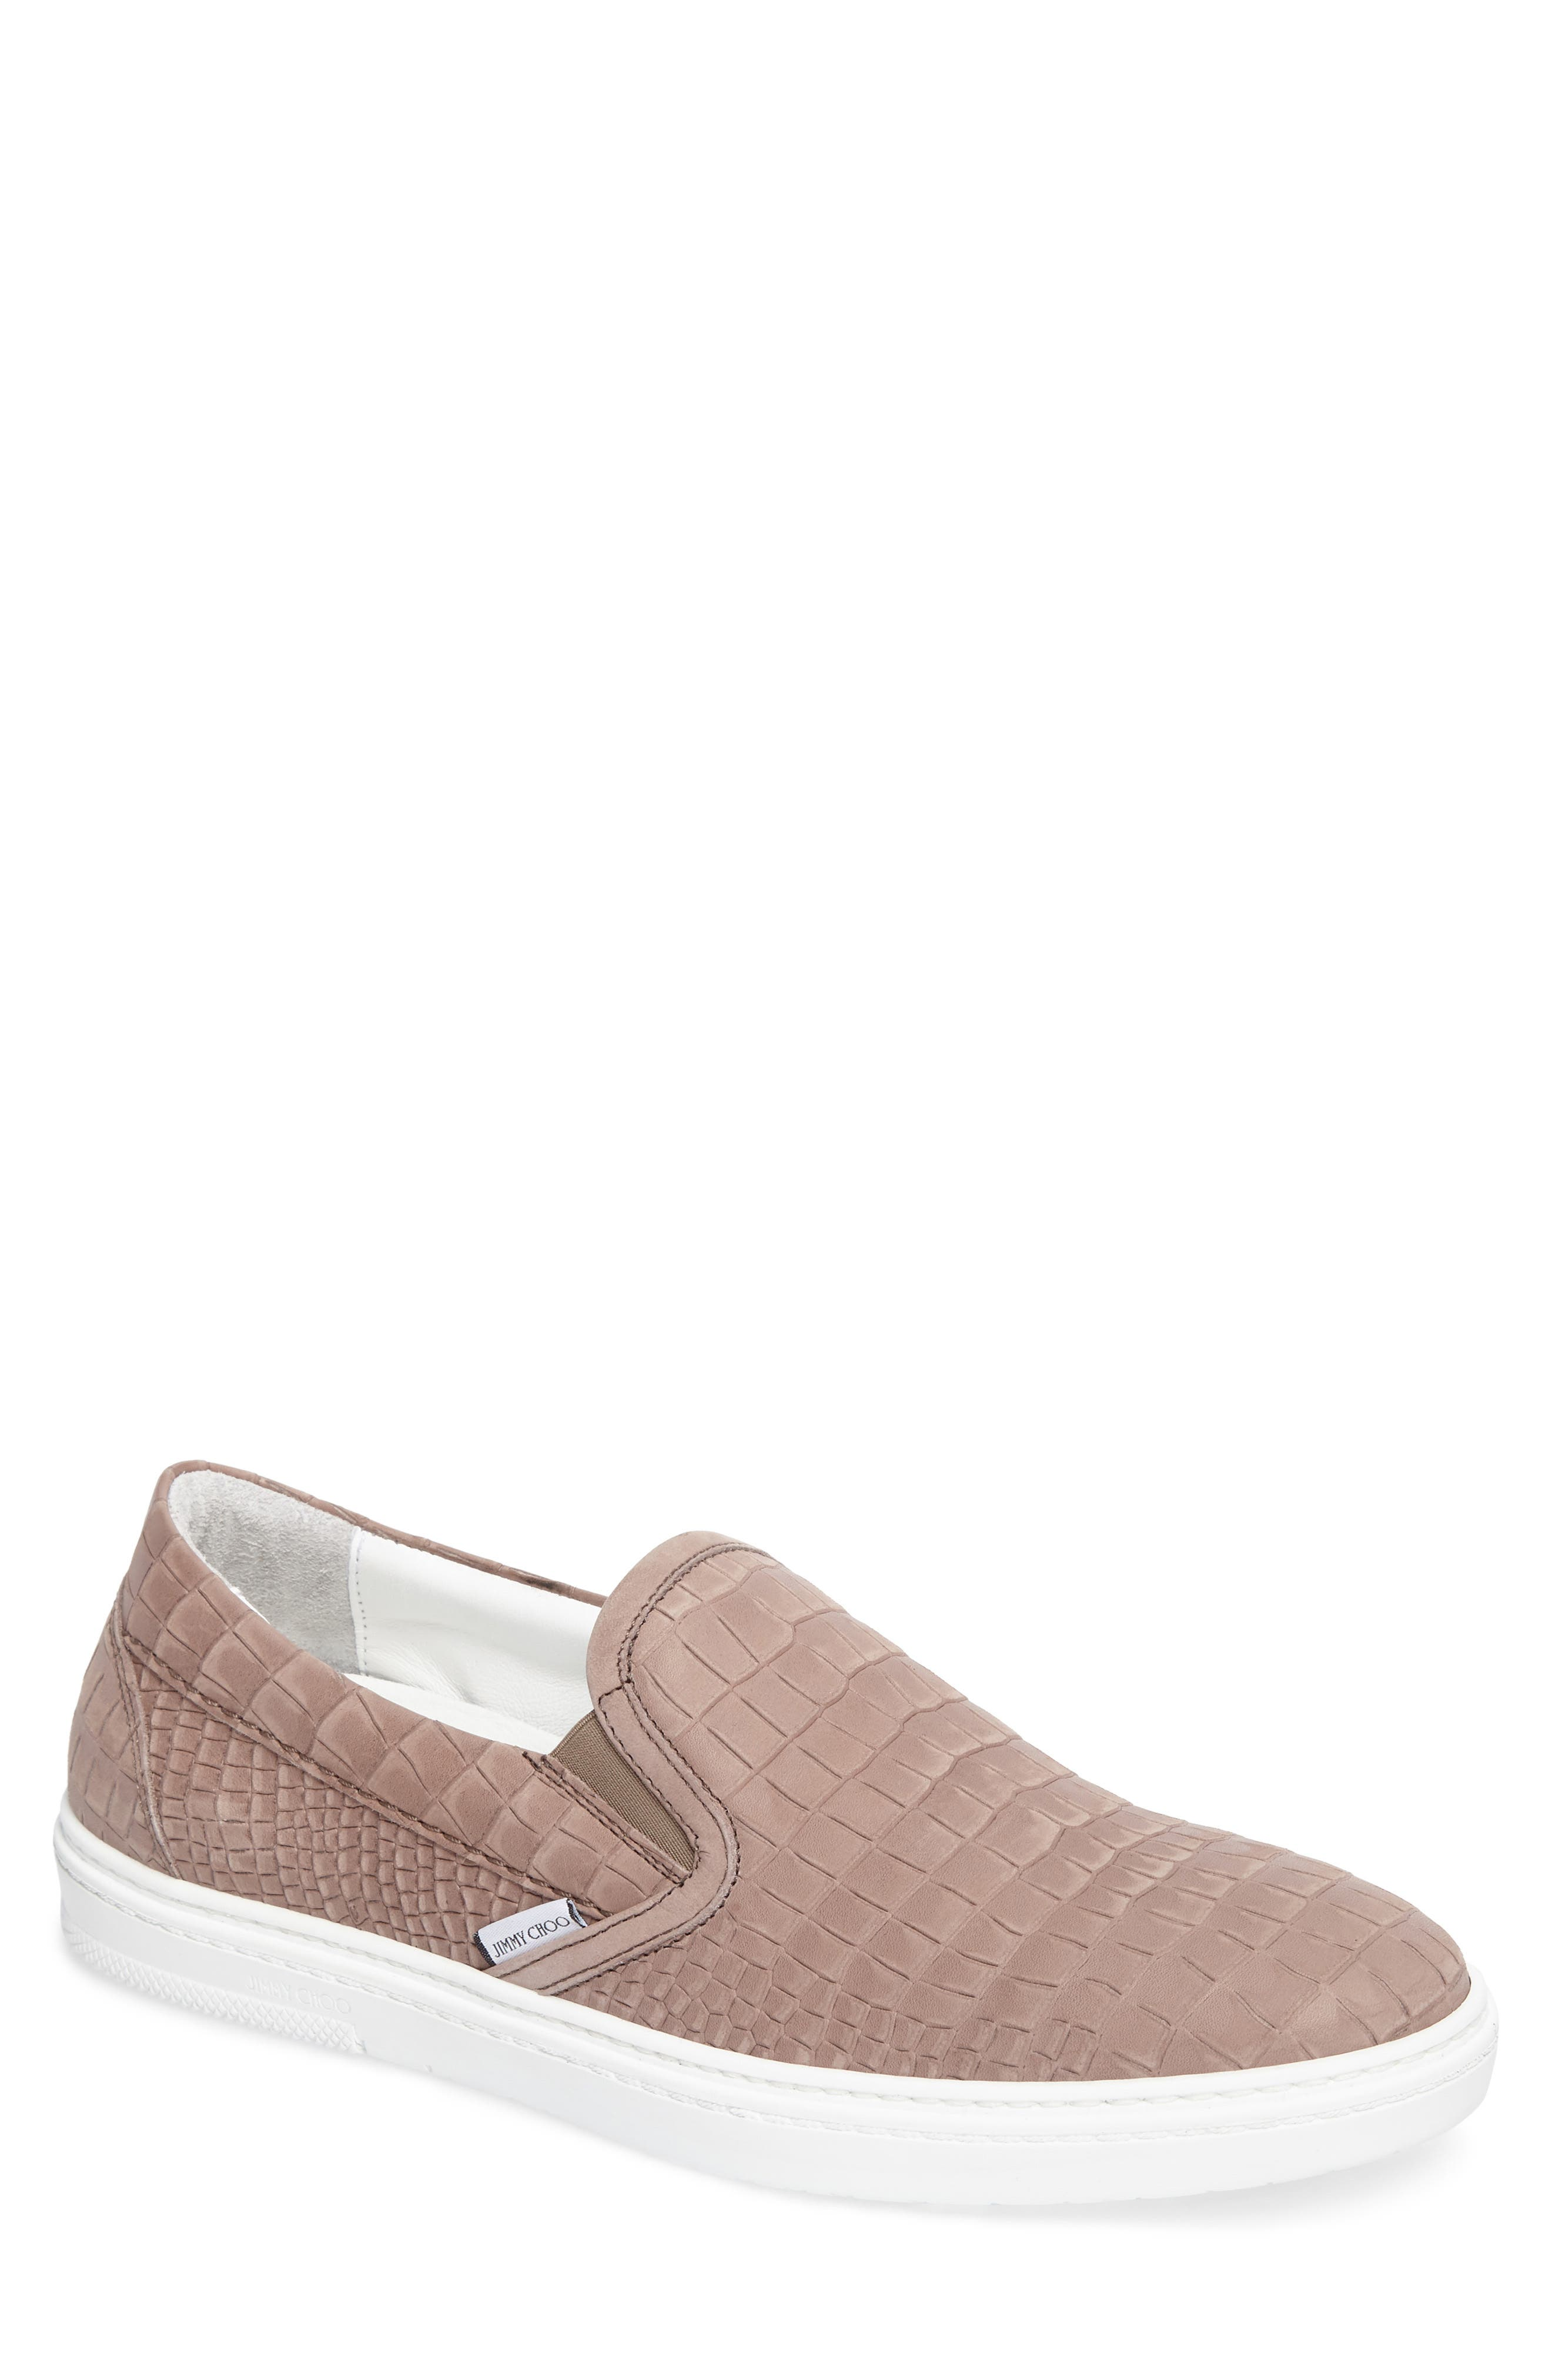 Slip-On Sneaker,                         Main,                         color,